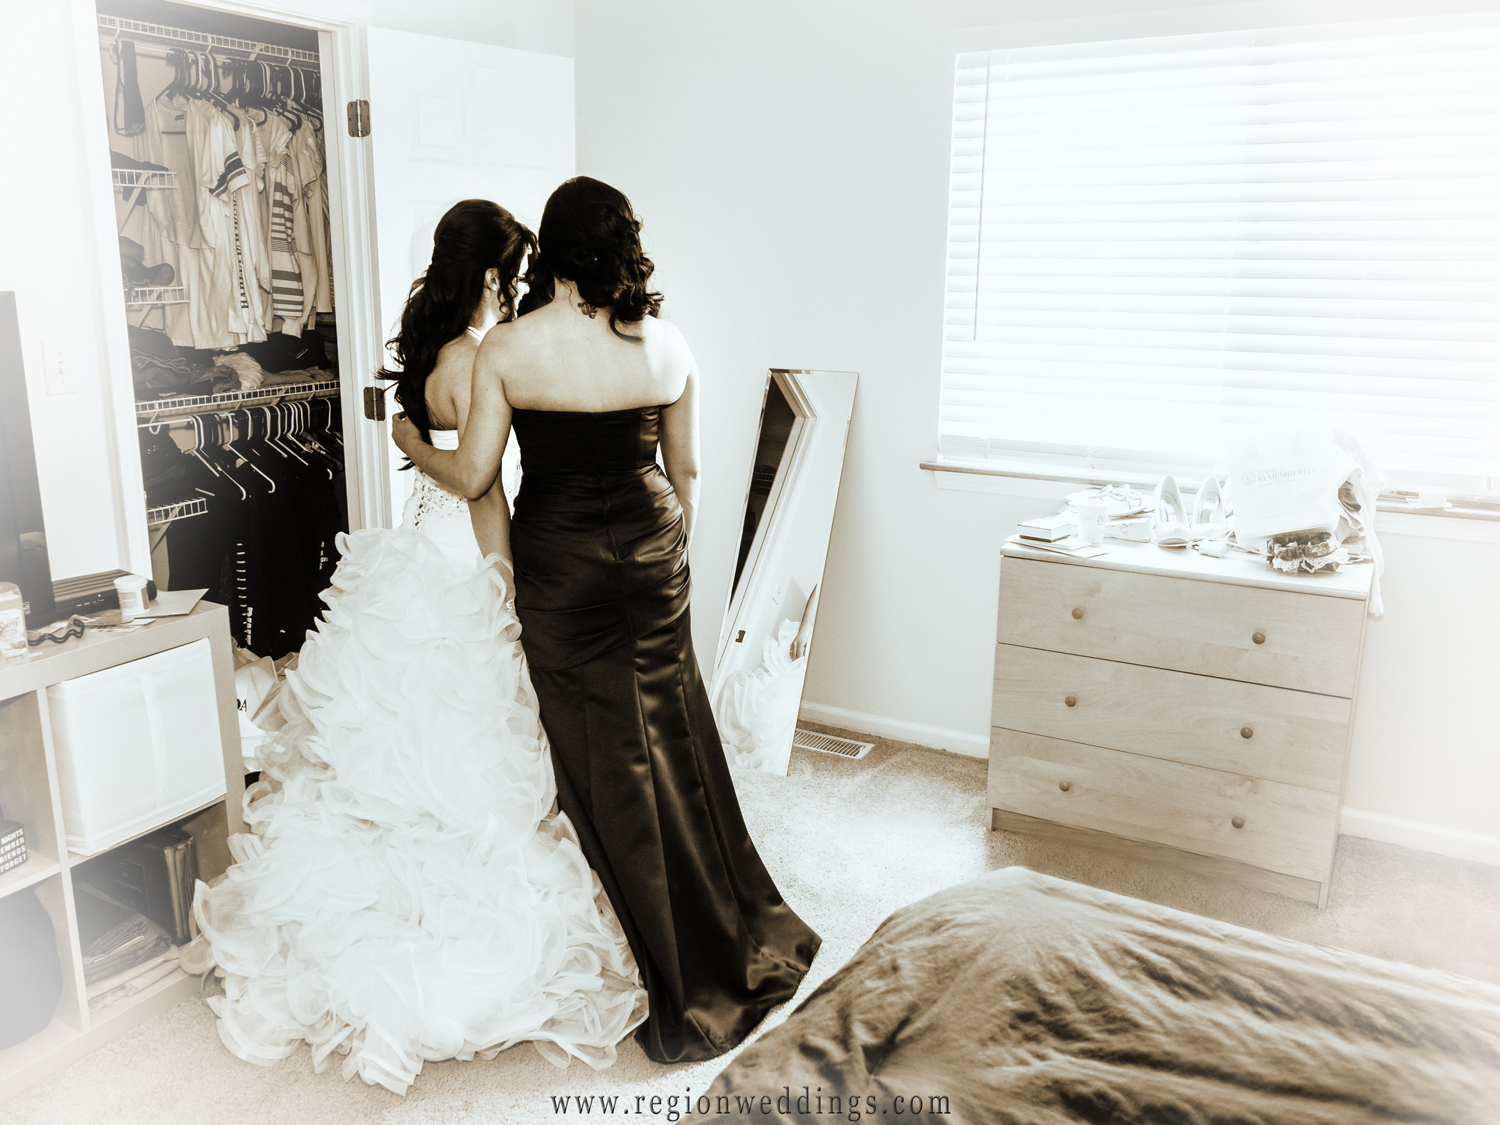 The bride alone with her mother before the ceremony.